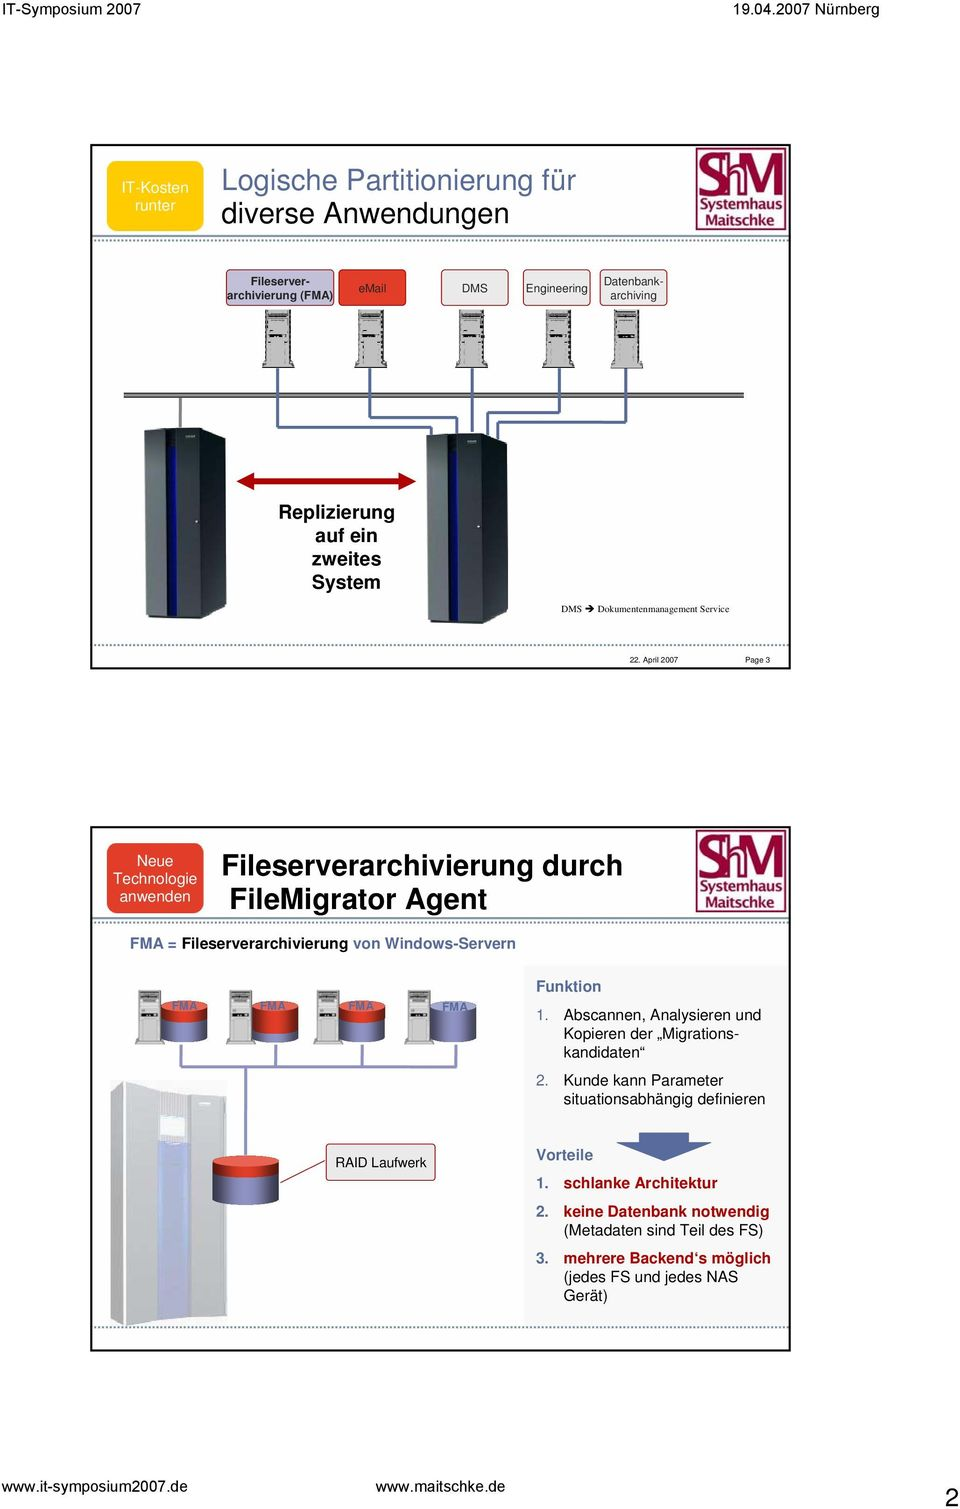 April 2007 Page 3 Neue Technologie anwenden Fileserverarchivierung durch FileMigrator Agent FMA = Fileserverarchivierung von Windows-Servern FMA FMA FMA FMA